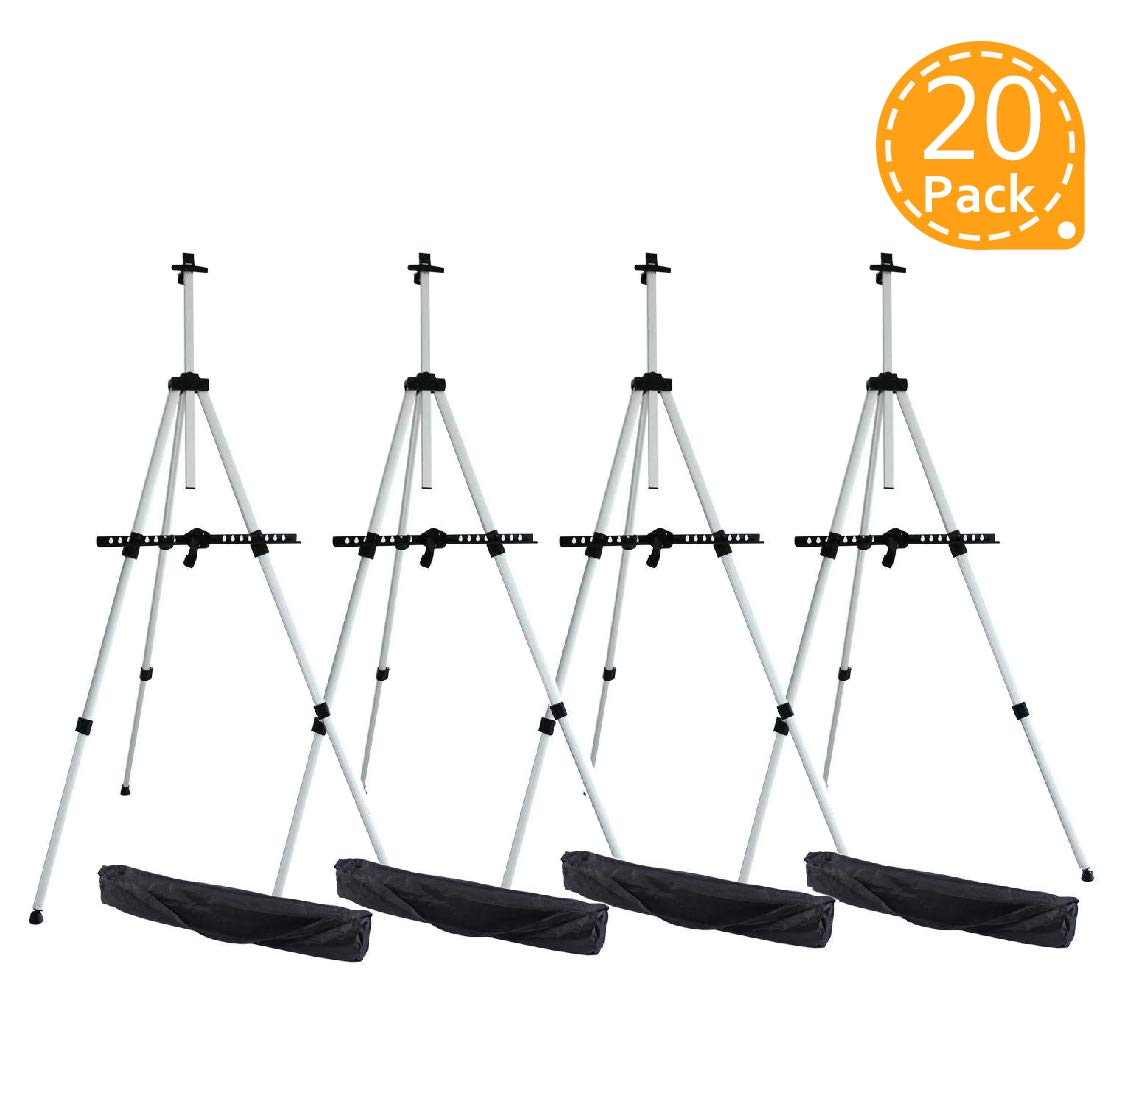 Artist Easel, Ohuhu 20-Pack Aluminum Field Easel Stand with Bag for Table-Top/Floor, Art Easels with Adjustable Height from 21-Inch to 66-Inch